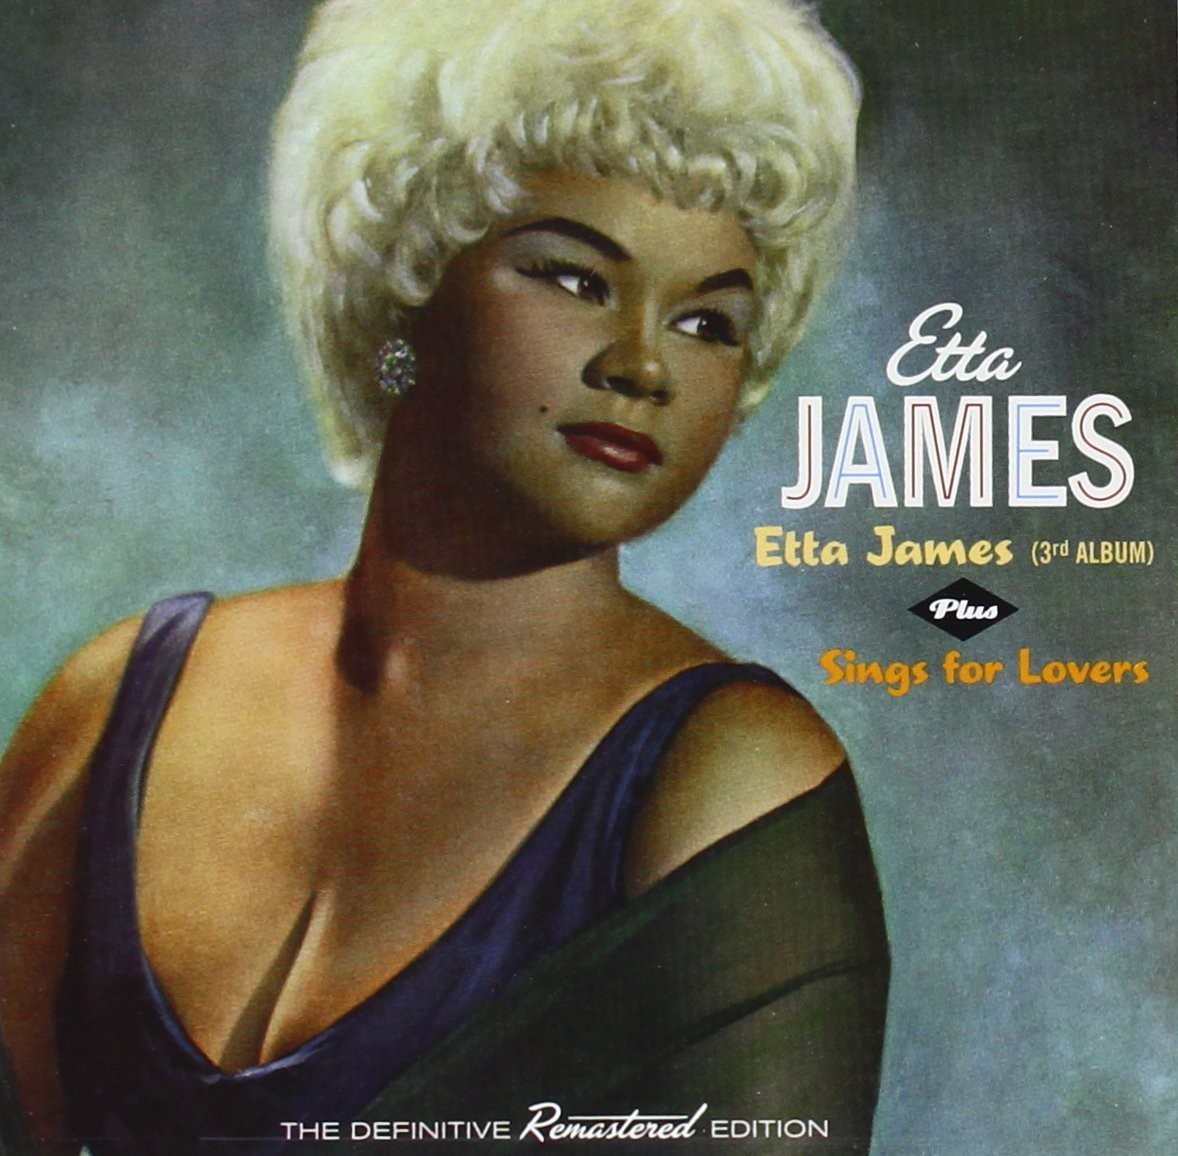 Etta James Etta James 3rd Album Plus Sings For Lovers